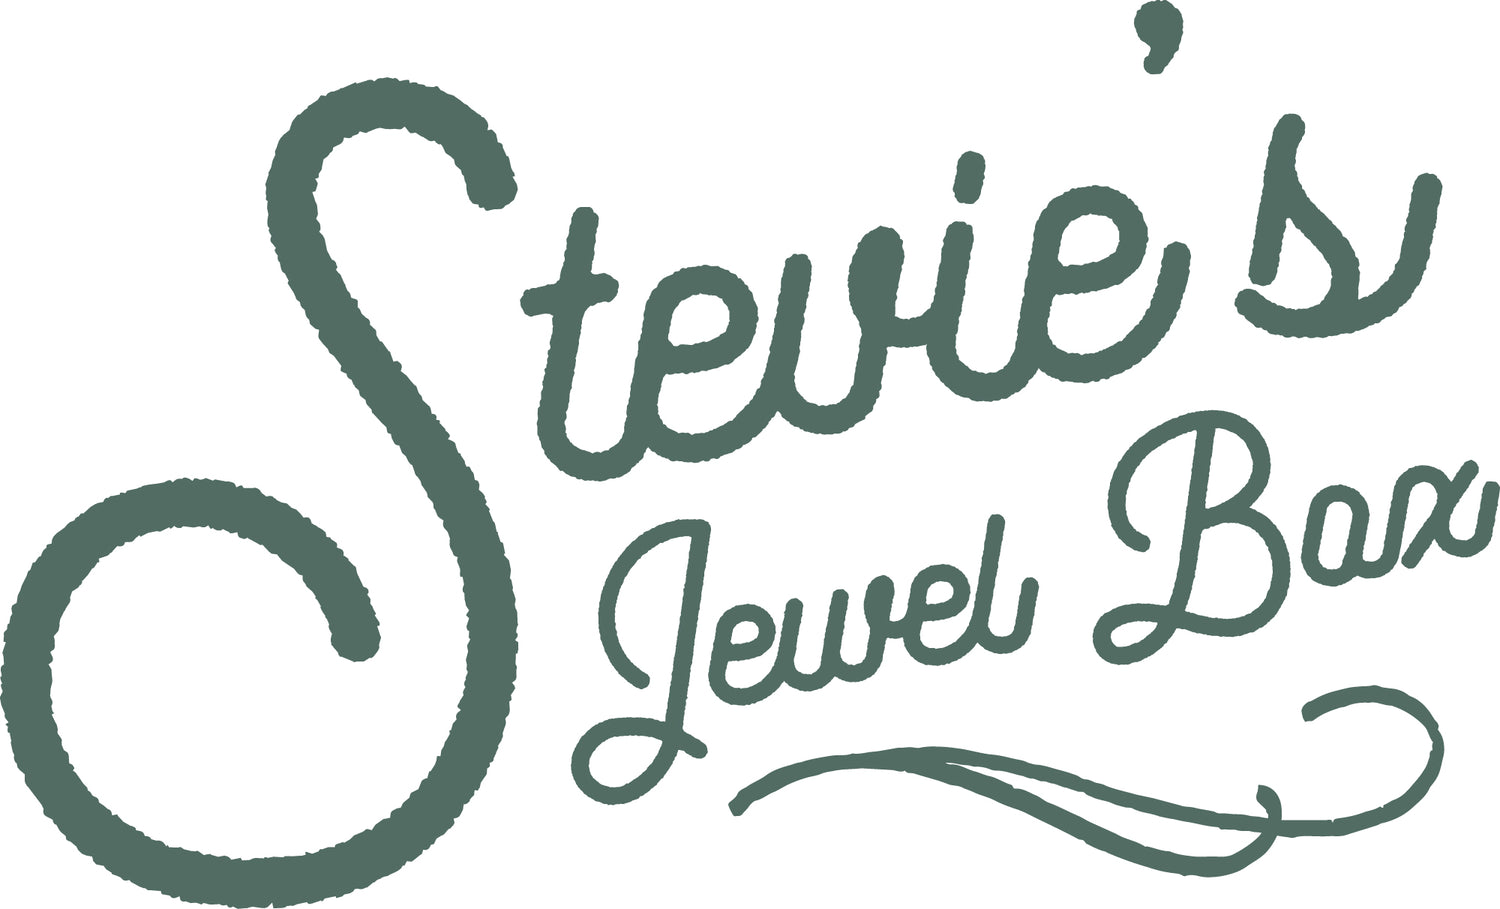 Stevie's Jewel Box